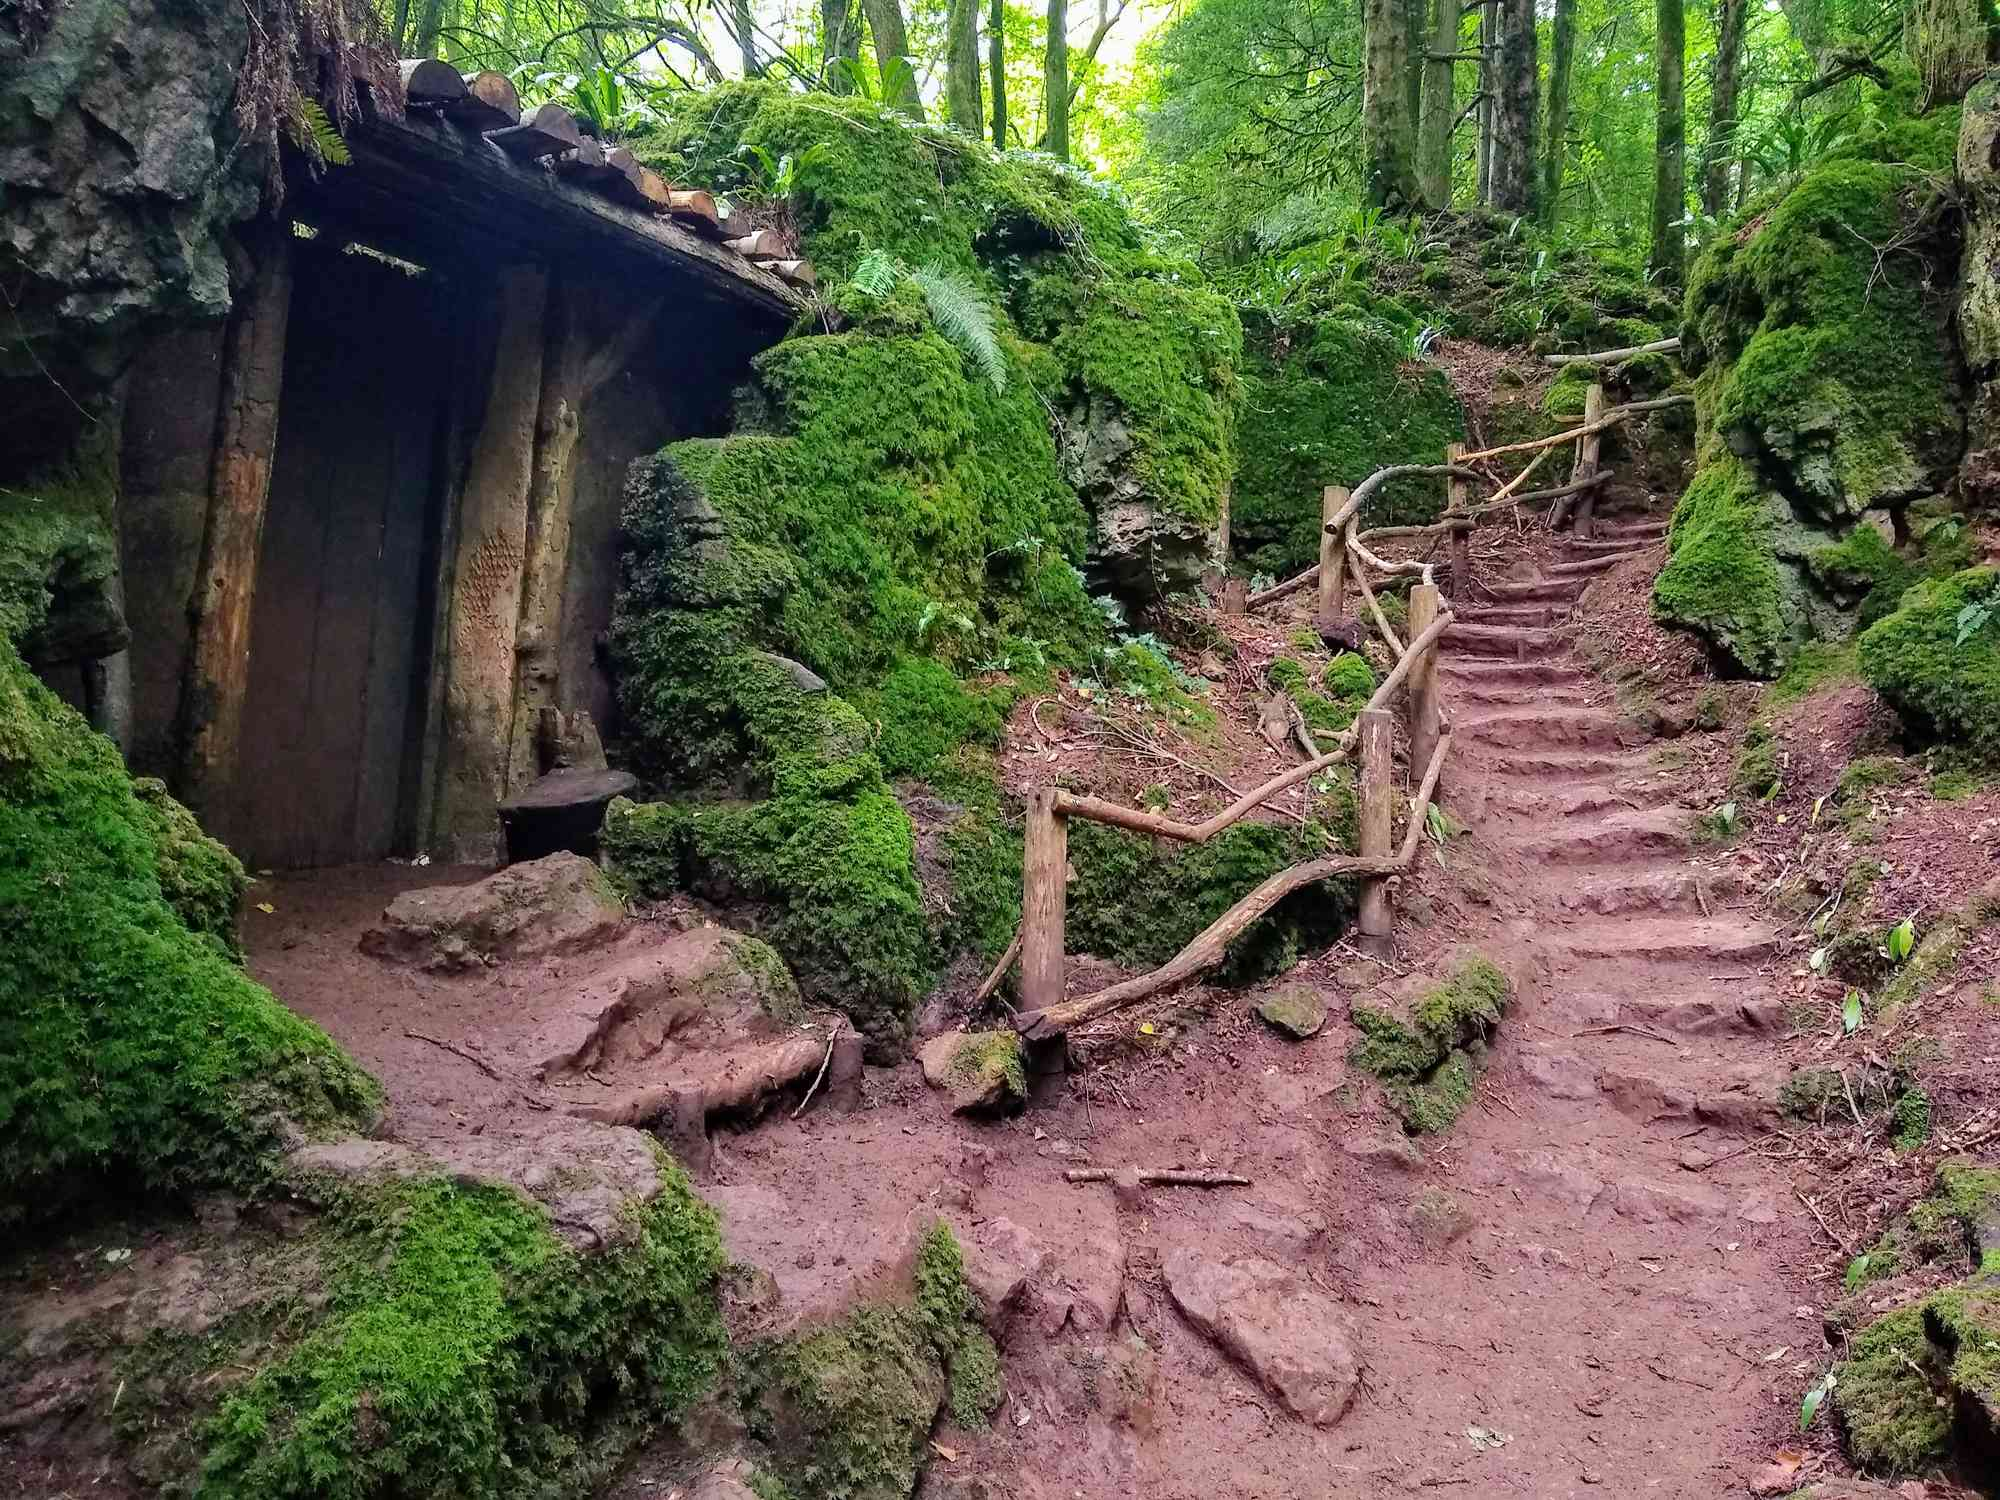 A wooden shack and stone staircase in a green forest